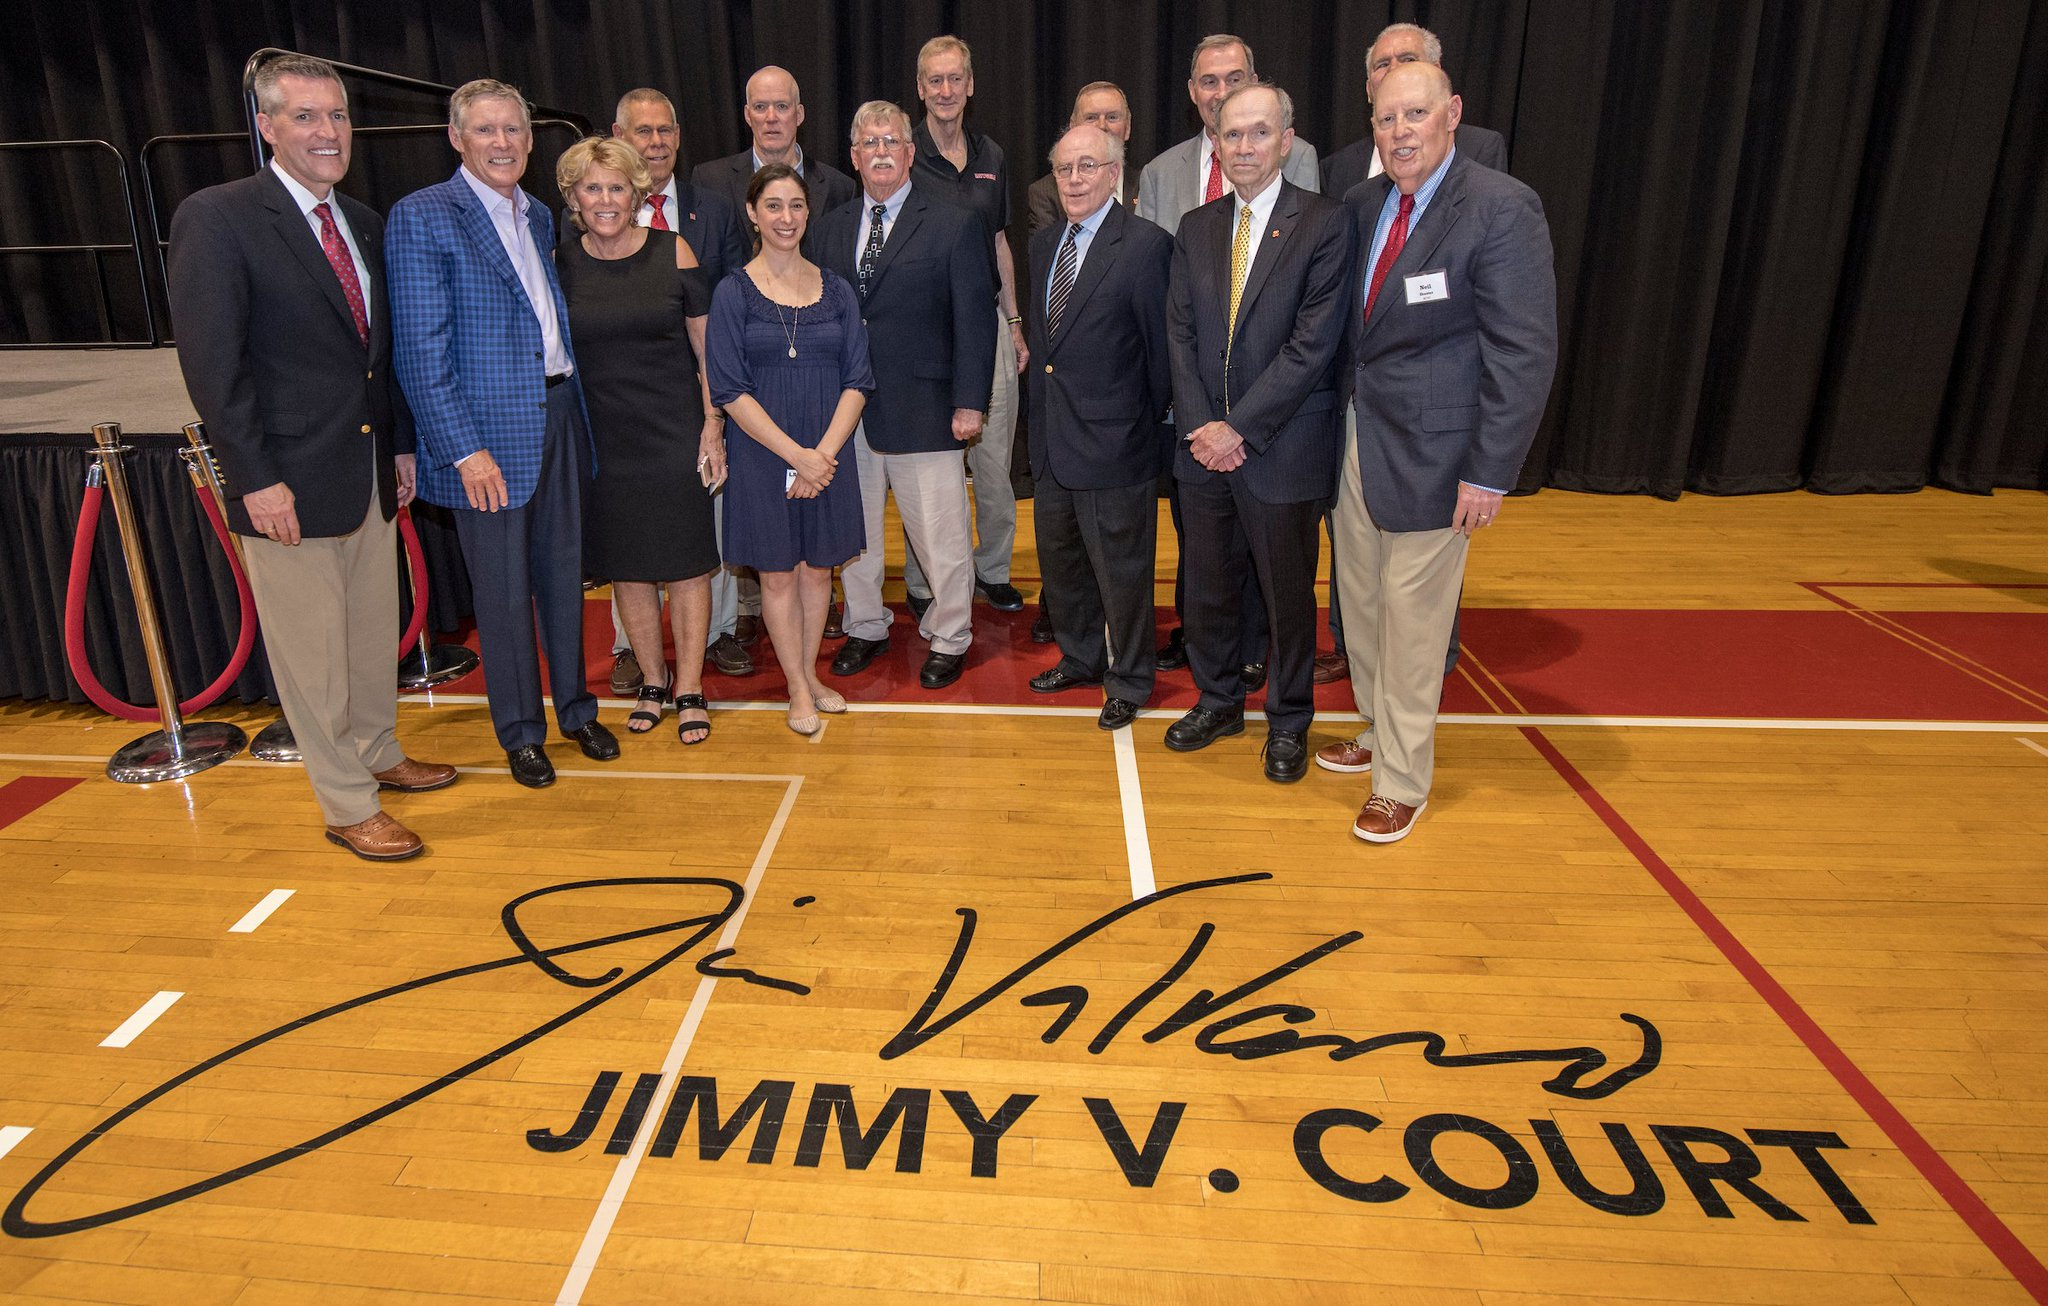 College Ave. Gym Court Officially Dedicated to Jim Valvano: https://t.co/UUDesxCYCr https://t.co/MGQSI2PaYV